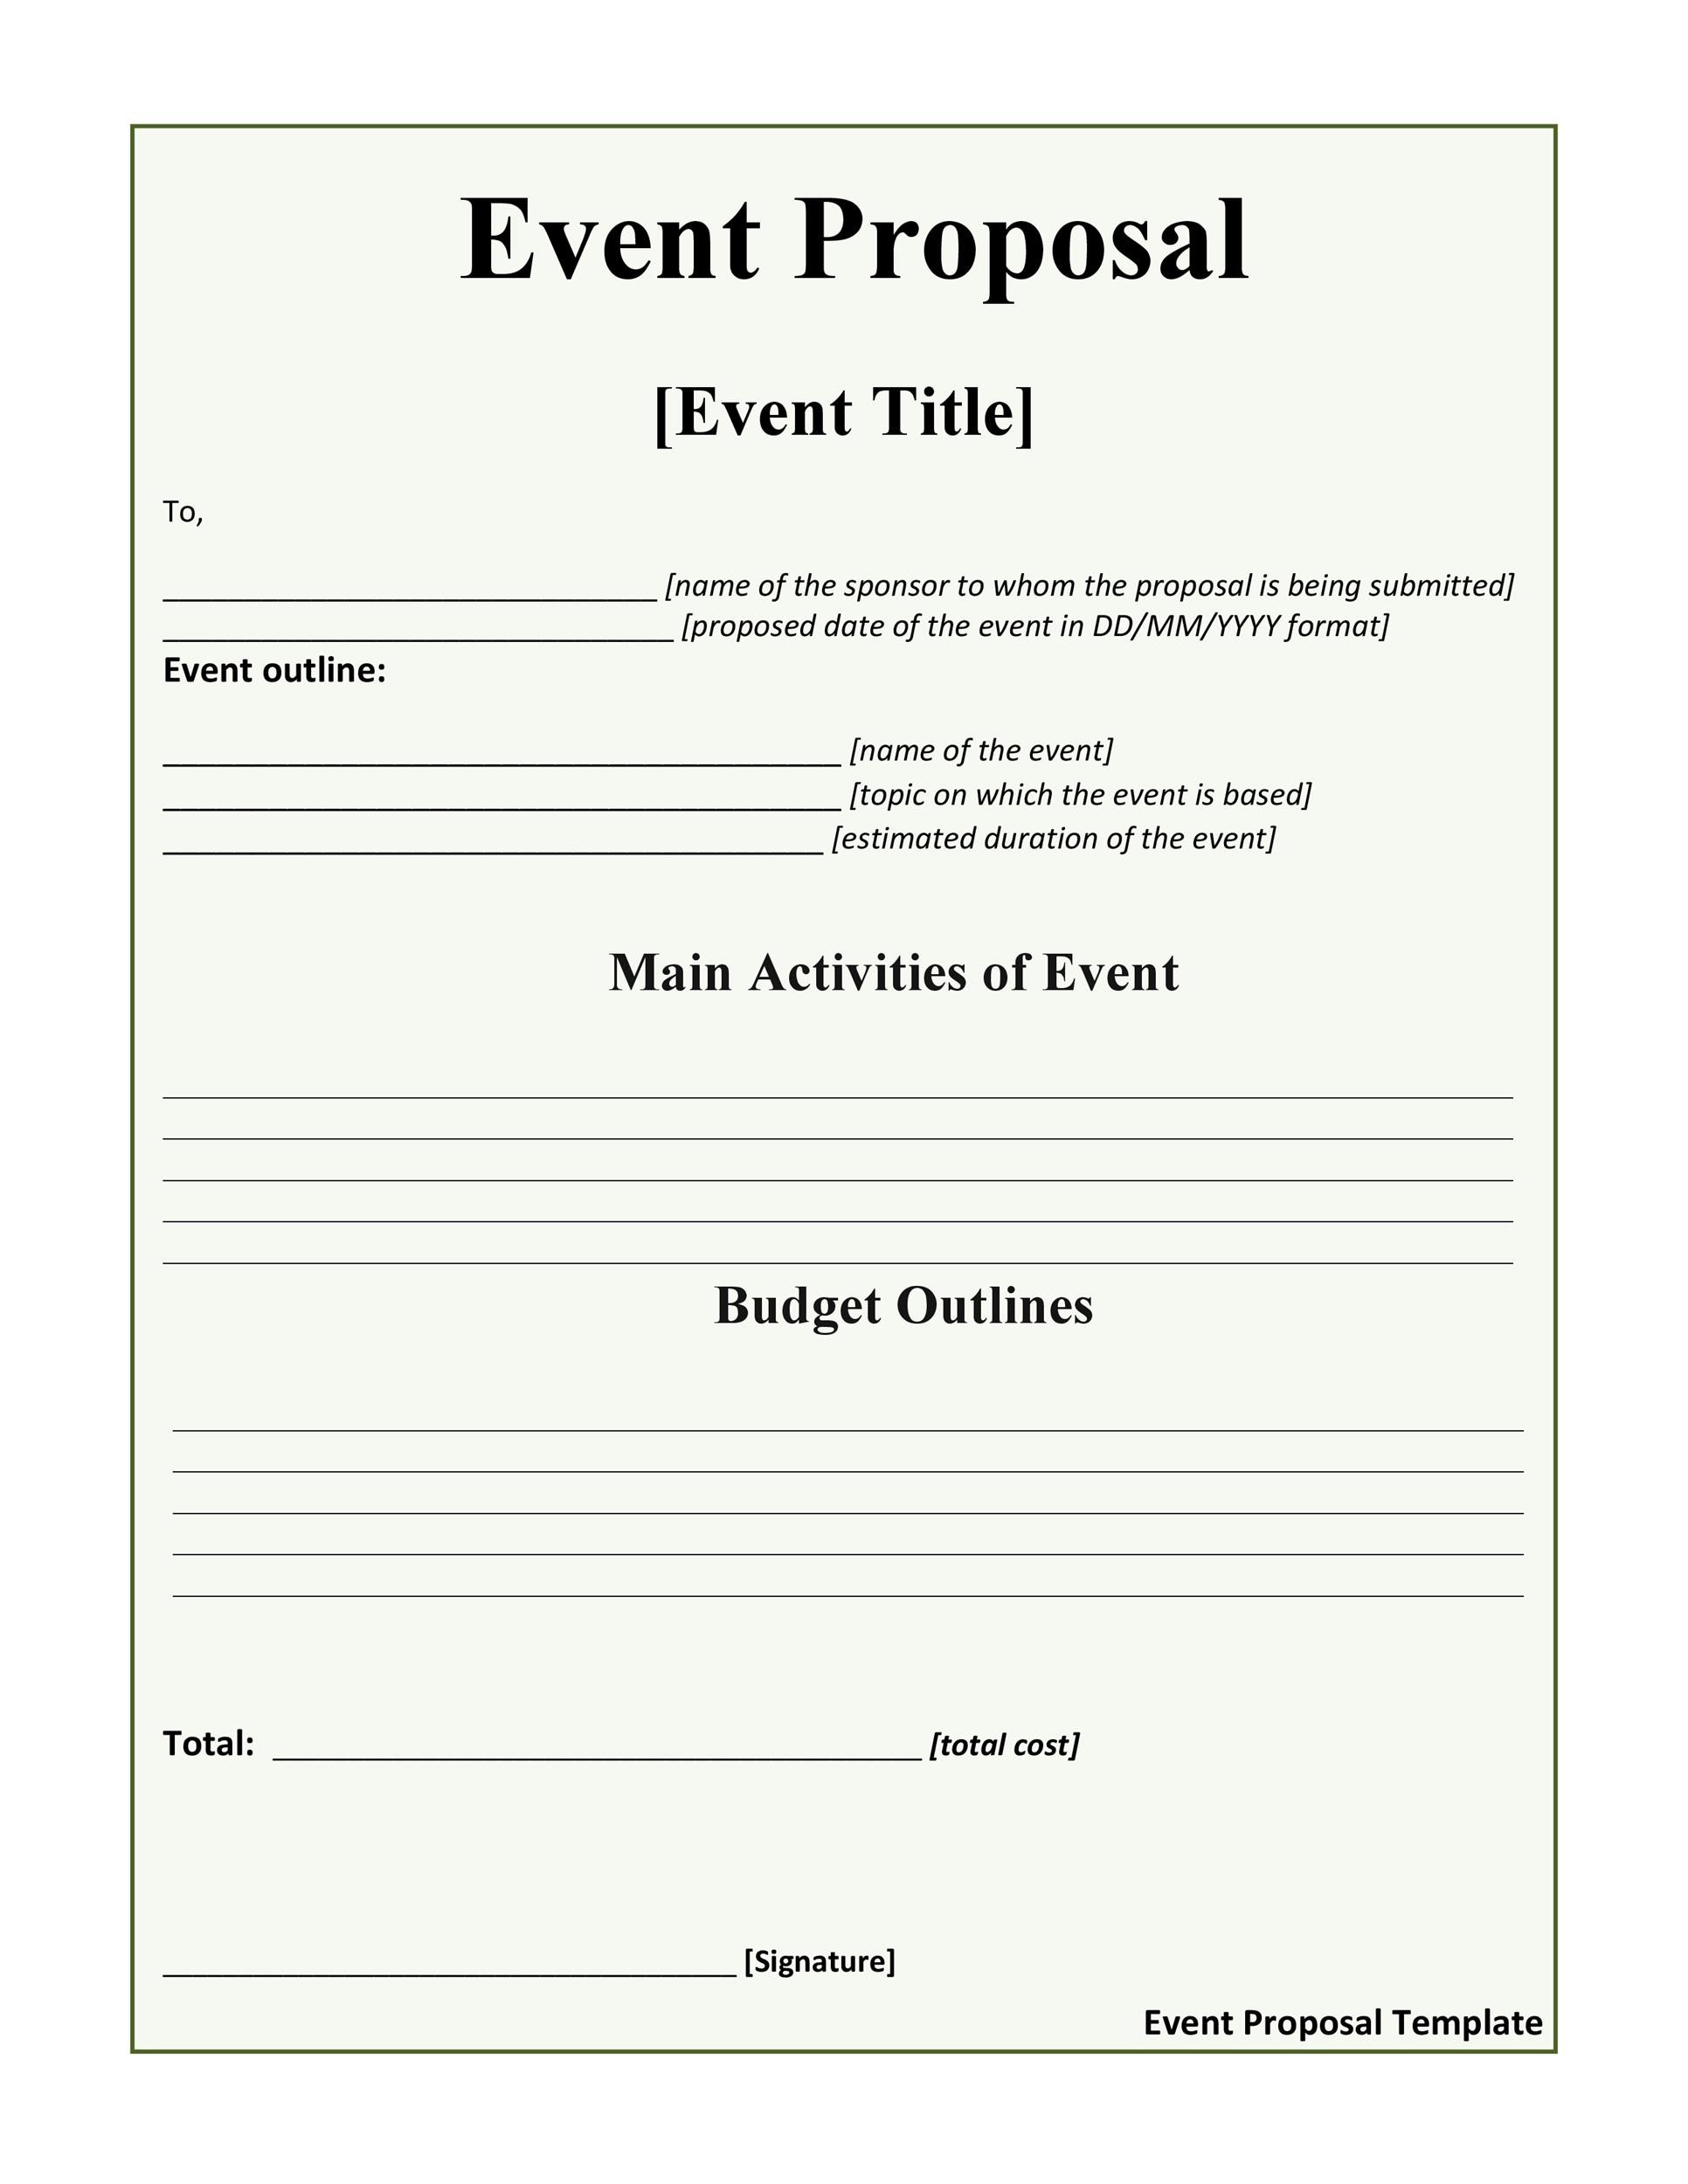 Free event proposal template 10